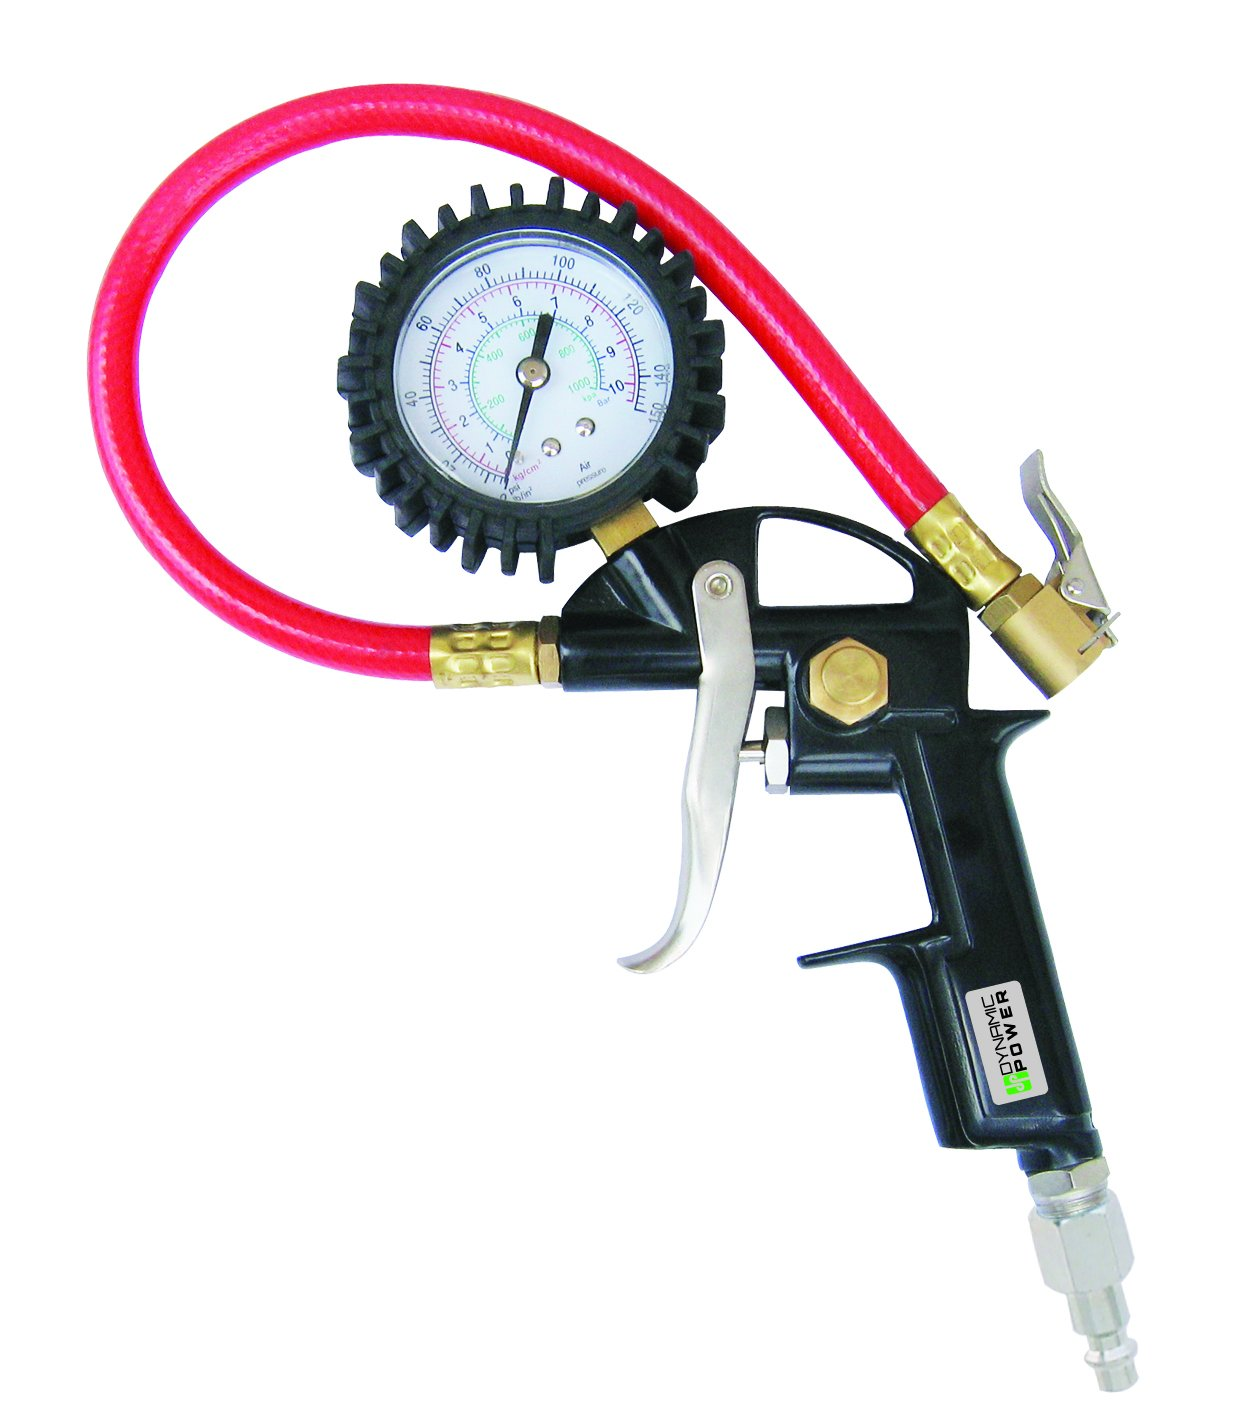 Dynamic Power Pistol Style Tire Inflator with Gauge. Combined Inflation GUn, CHuck, and Gauge. Built-in Relief Valve. D355303